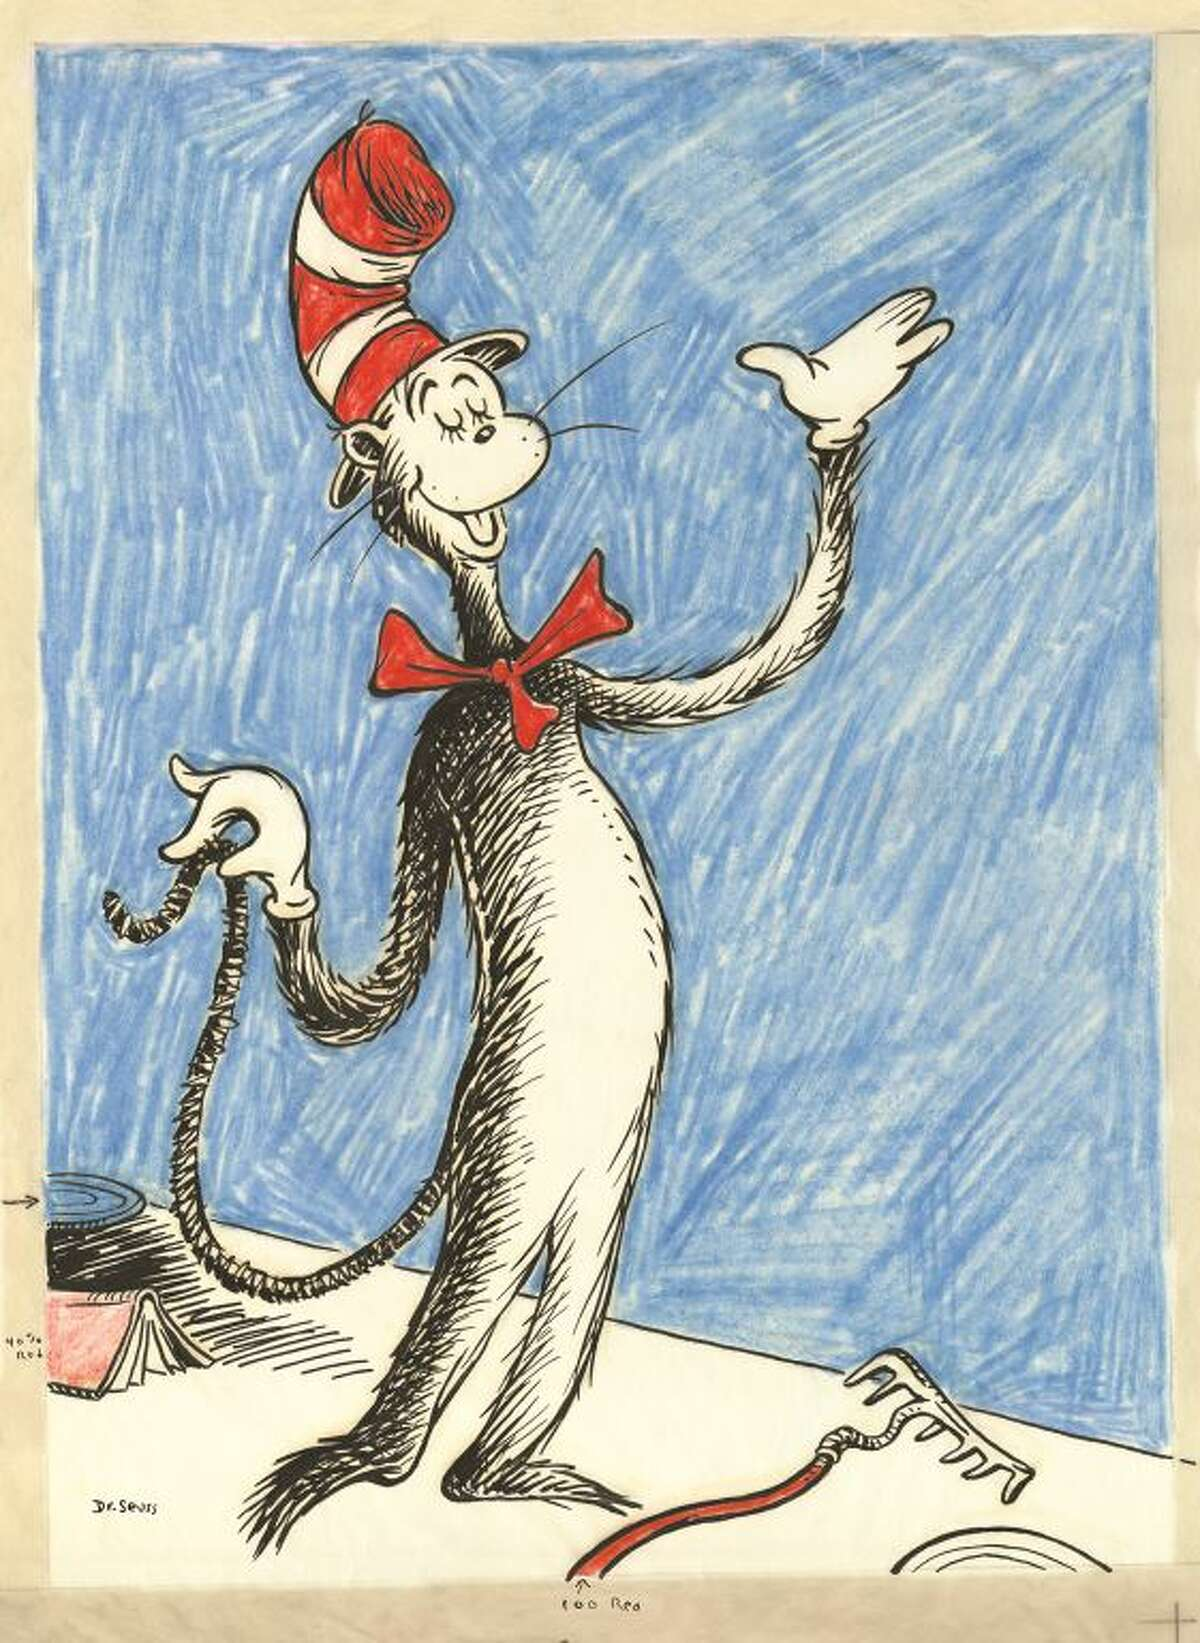 On that cold, cold wet day In the 1950s, parents and educators became concerned that children weren't reading because their books were too dull. The head of the education division at Houghton Mifflin, William Ellsworth Spaudling, asked Theodor Seuss Geisel, a successful illustrator, to create an entertaining book using only 348 core words.